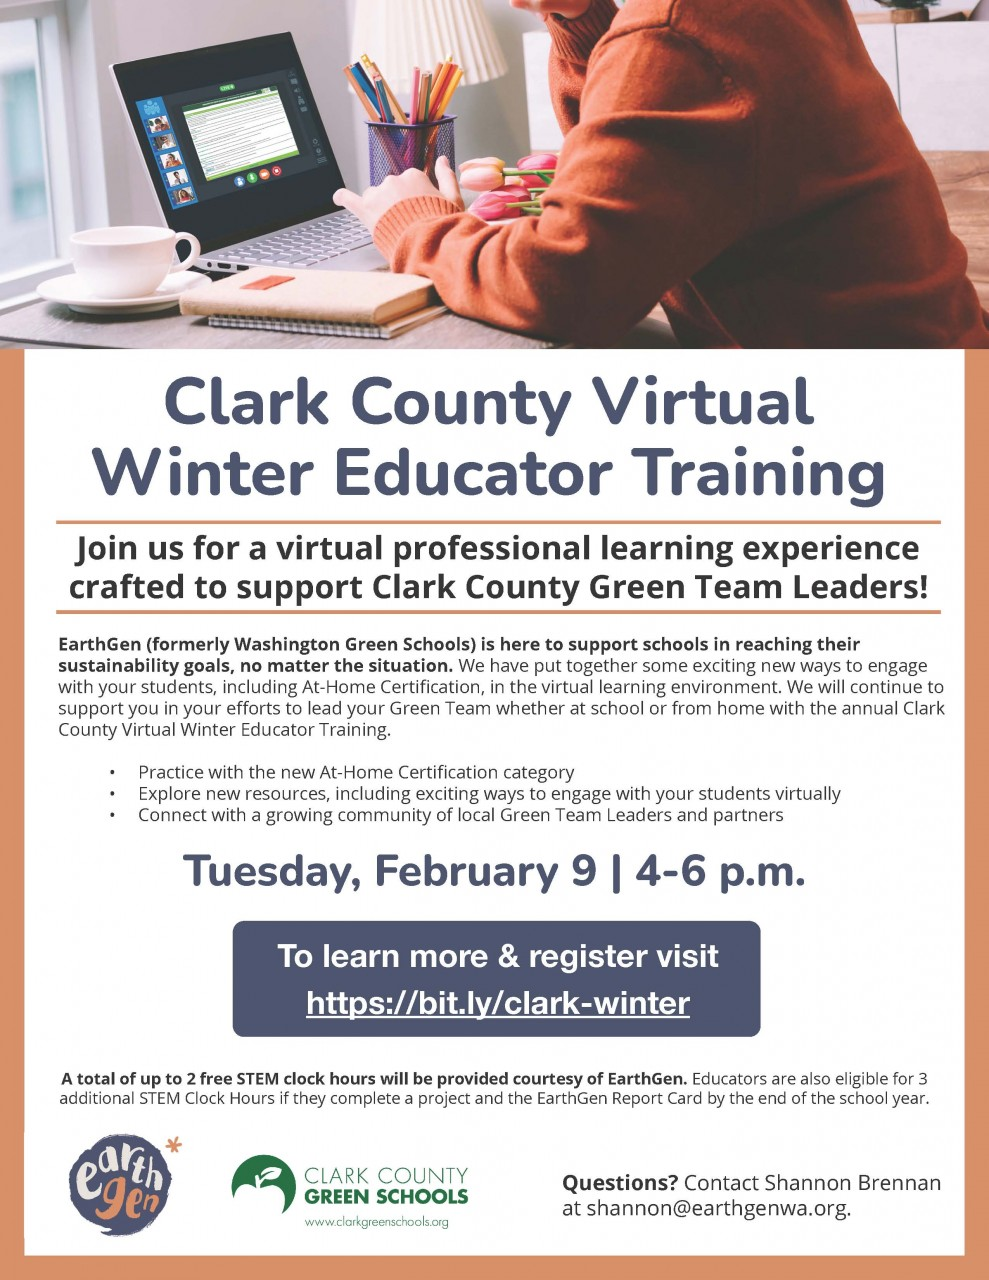 EarthGen (formerly Washington Green Schools) virtual winter training - February 9 - register now